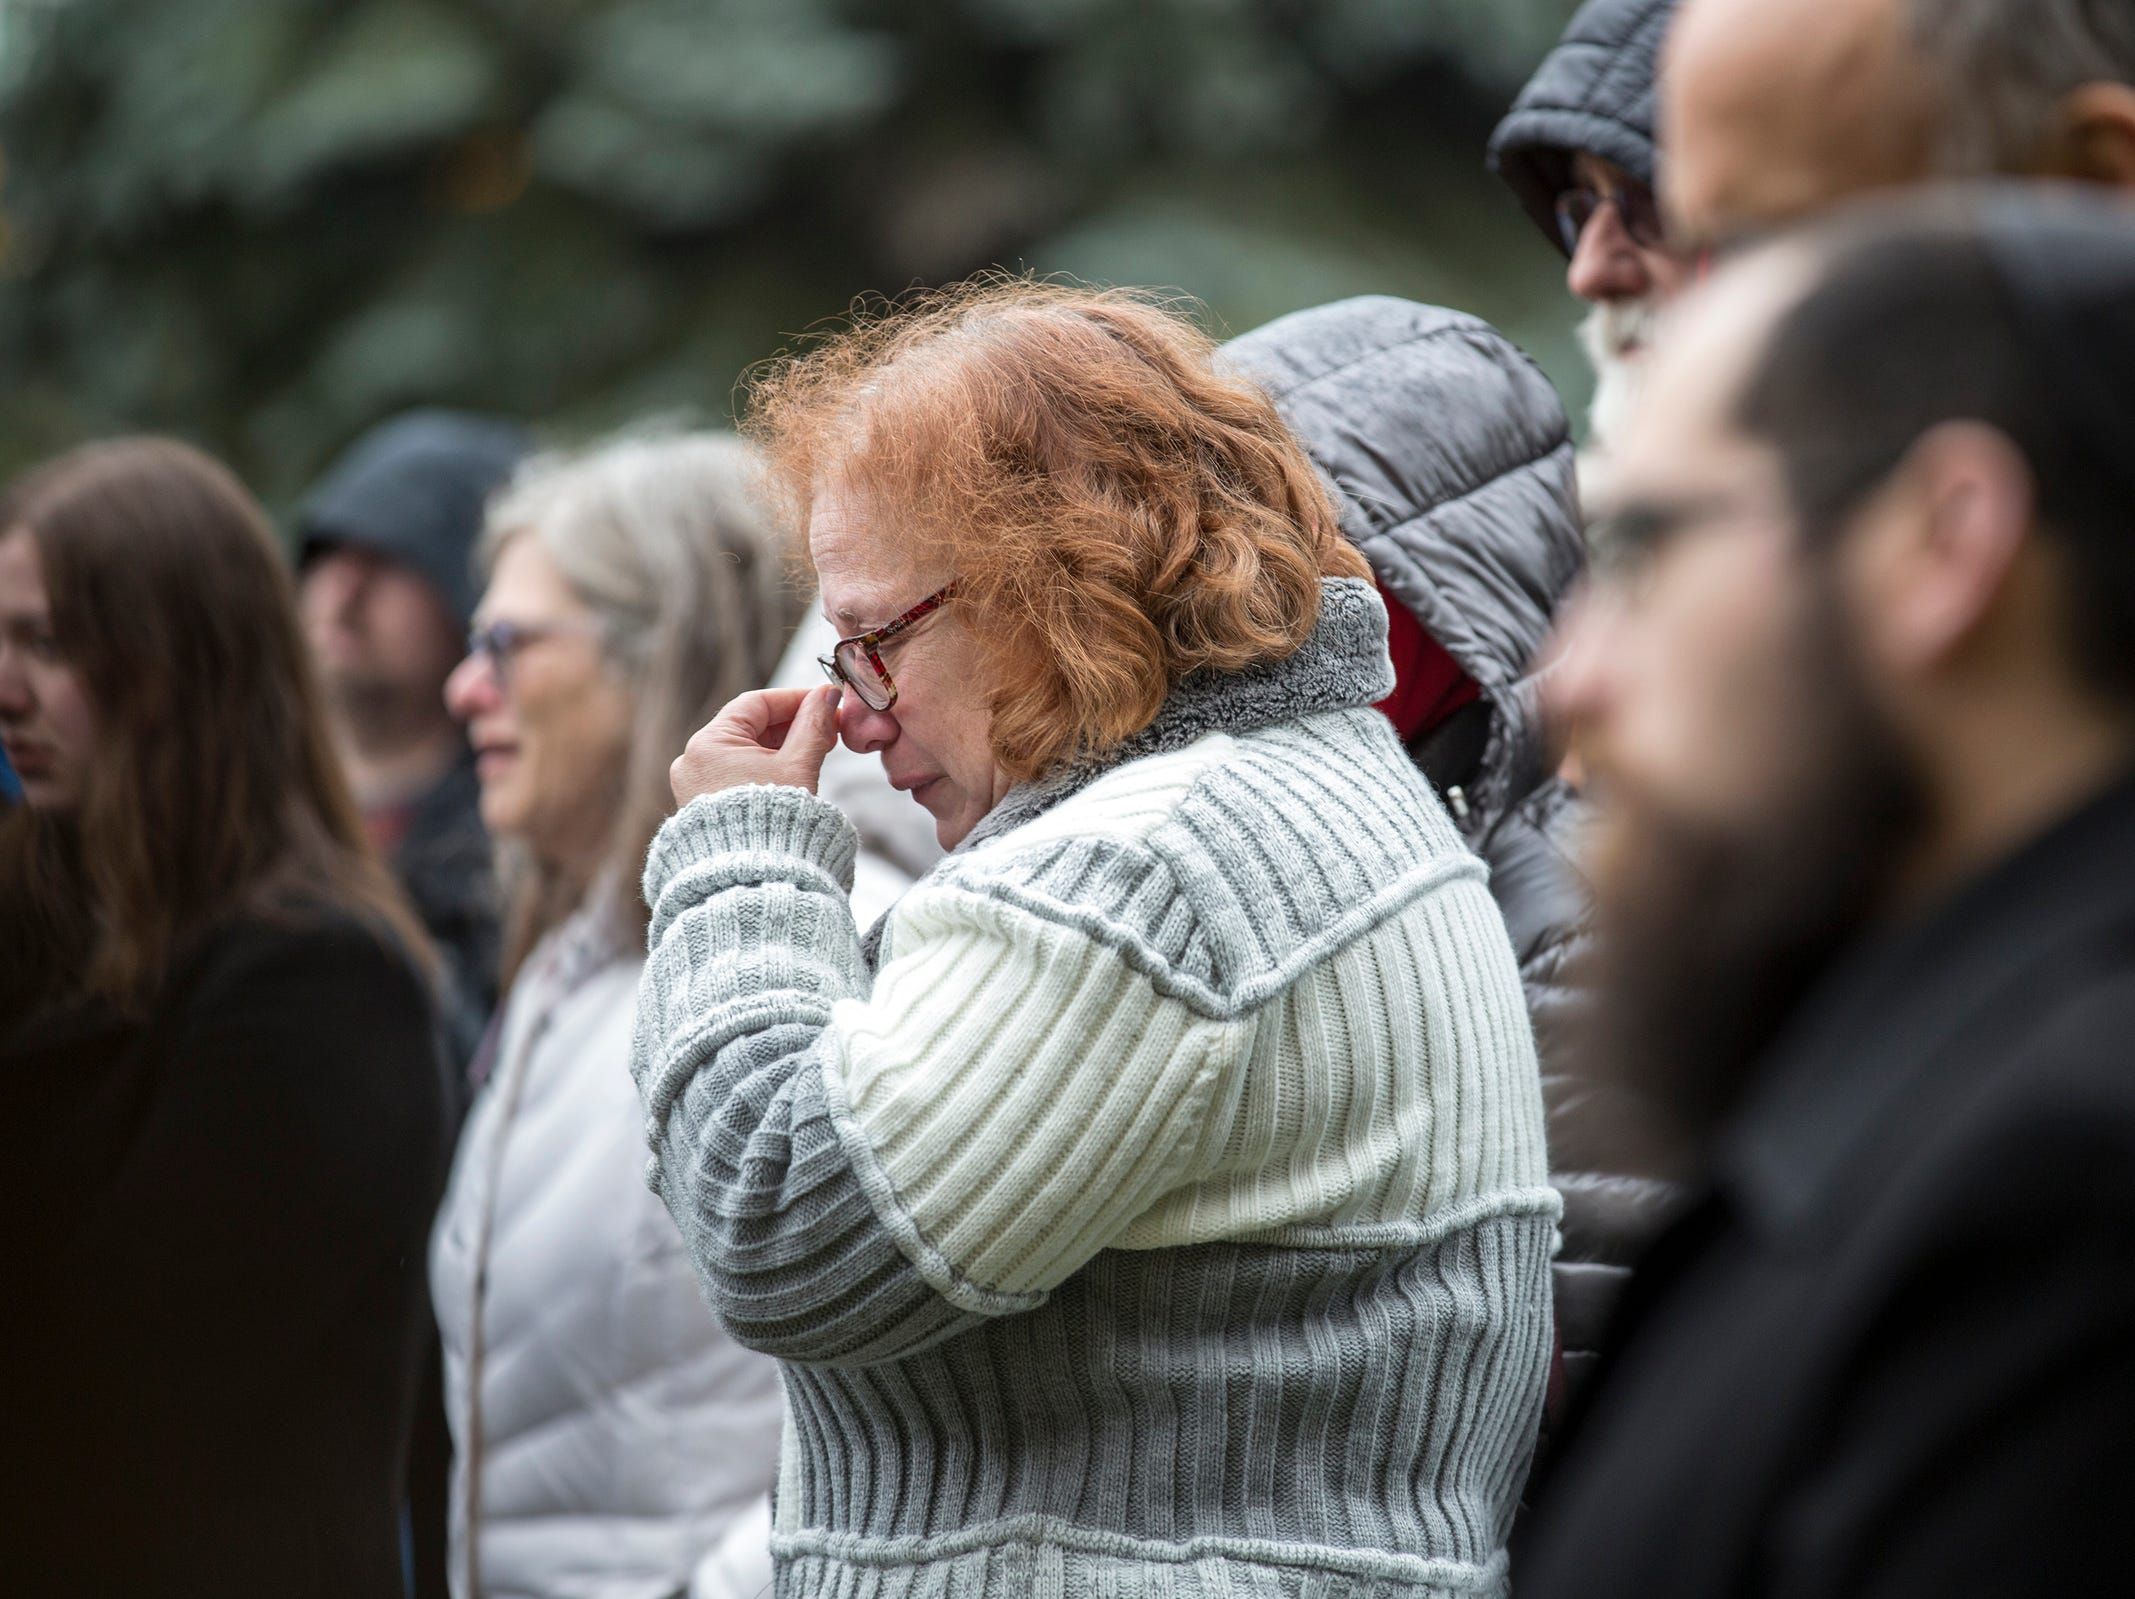 Mourners gather at Jewish Ferndale during a vigil, in honor of 11 people who were killed during a mass shooting in Pittsburgh, on Sunday, Oct. 28, 2018.